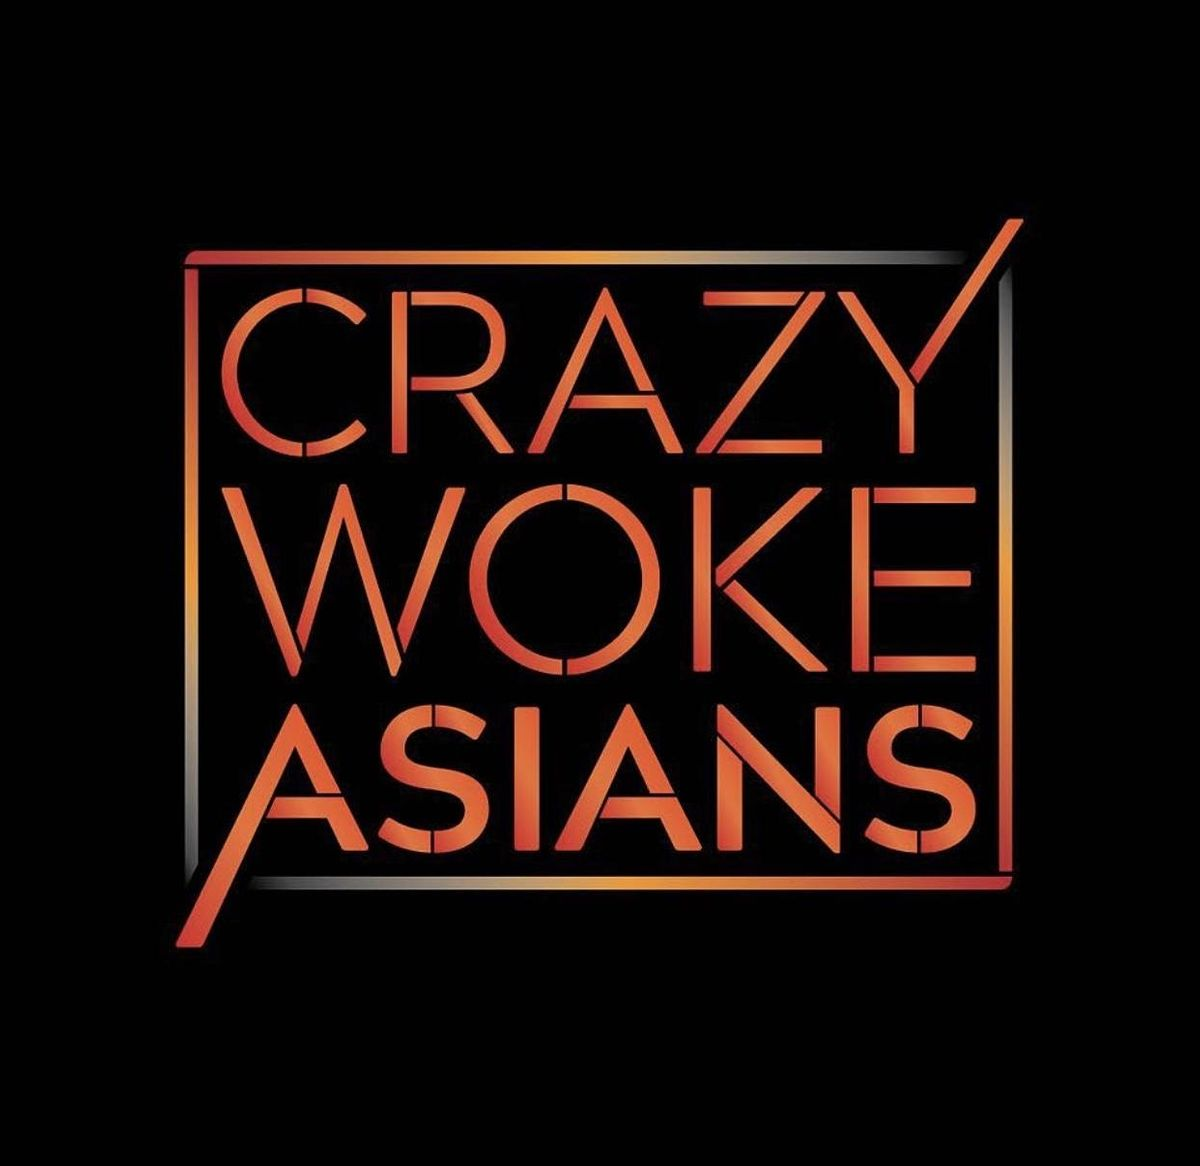 CRAZY WOKE ASIANS LIVE IN NEW YORK ST MARKS COMEDY CLUB! ONE NIGHT ONLY!